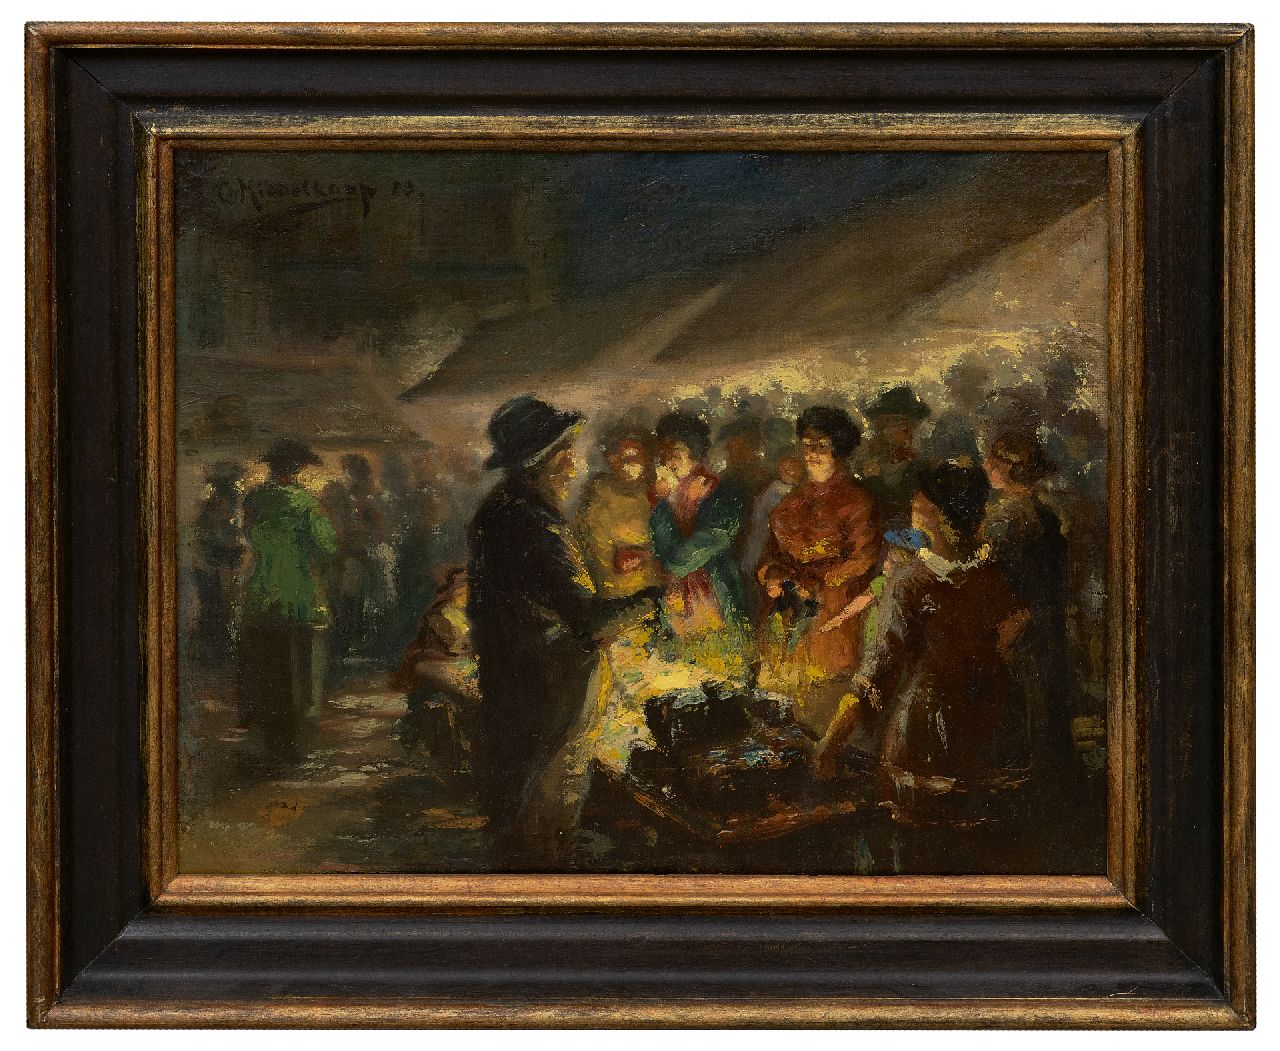 Middelkoop C.H.L.  | Cornelis Helenis Lodewijk Middelkoop | Paintings offered for sale | Marketplace at night, oil on canvas 33.0 x 39.9 cm, signed u.l. and dated '23